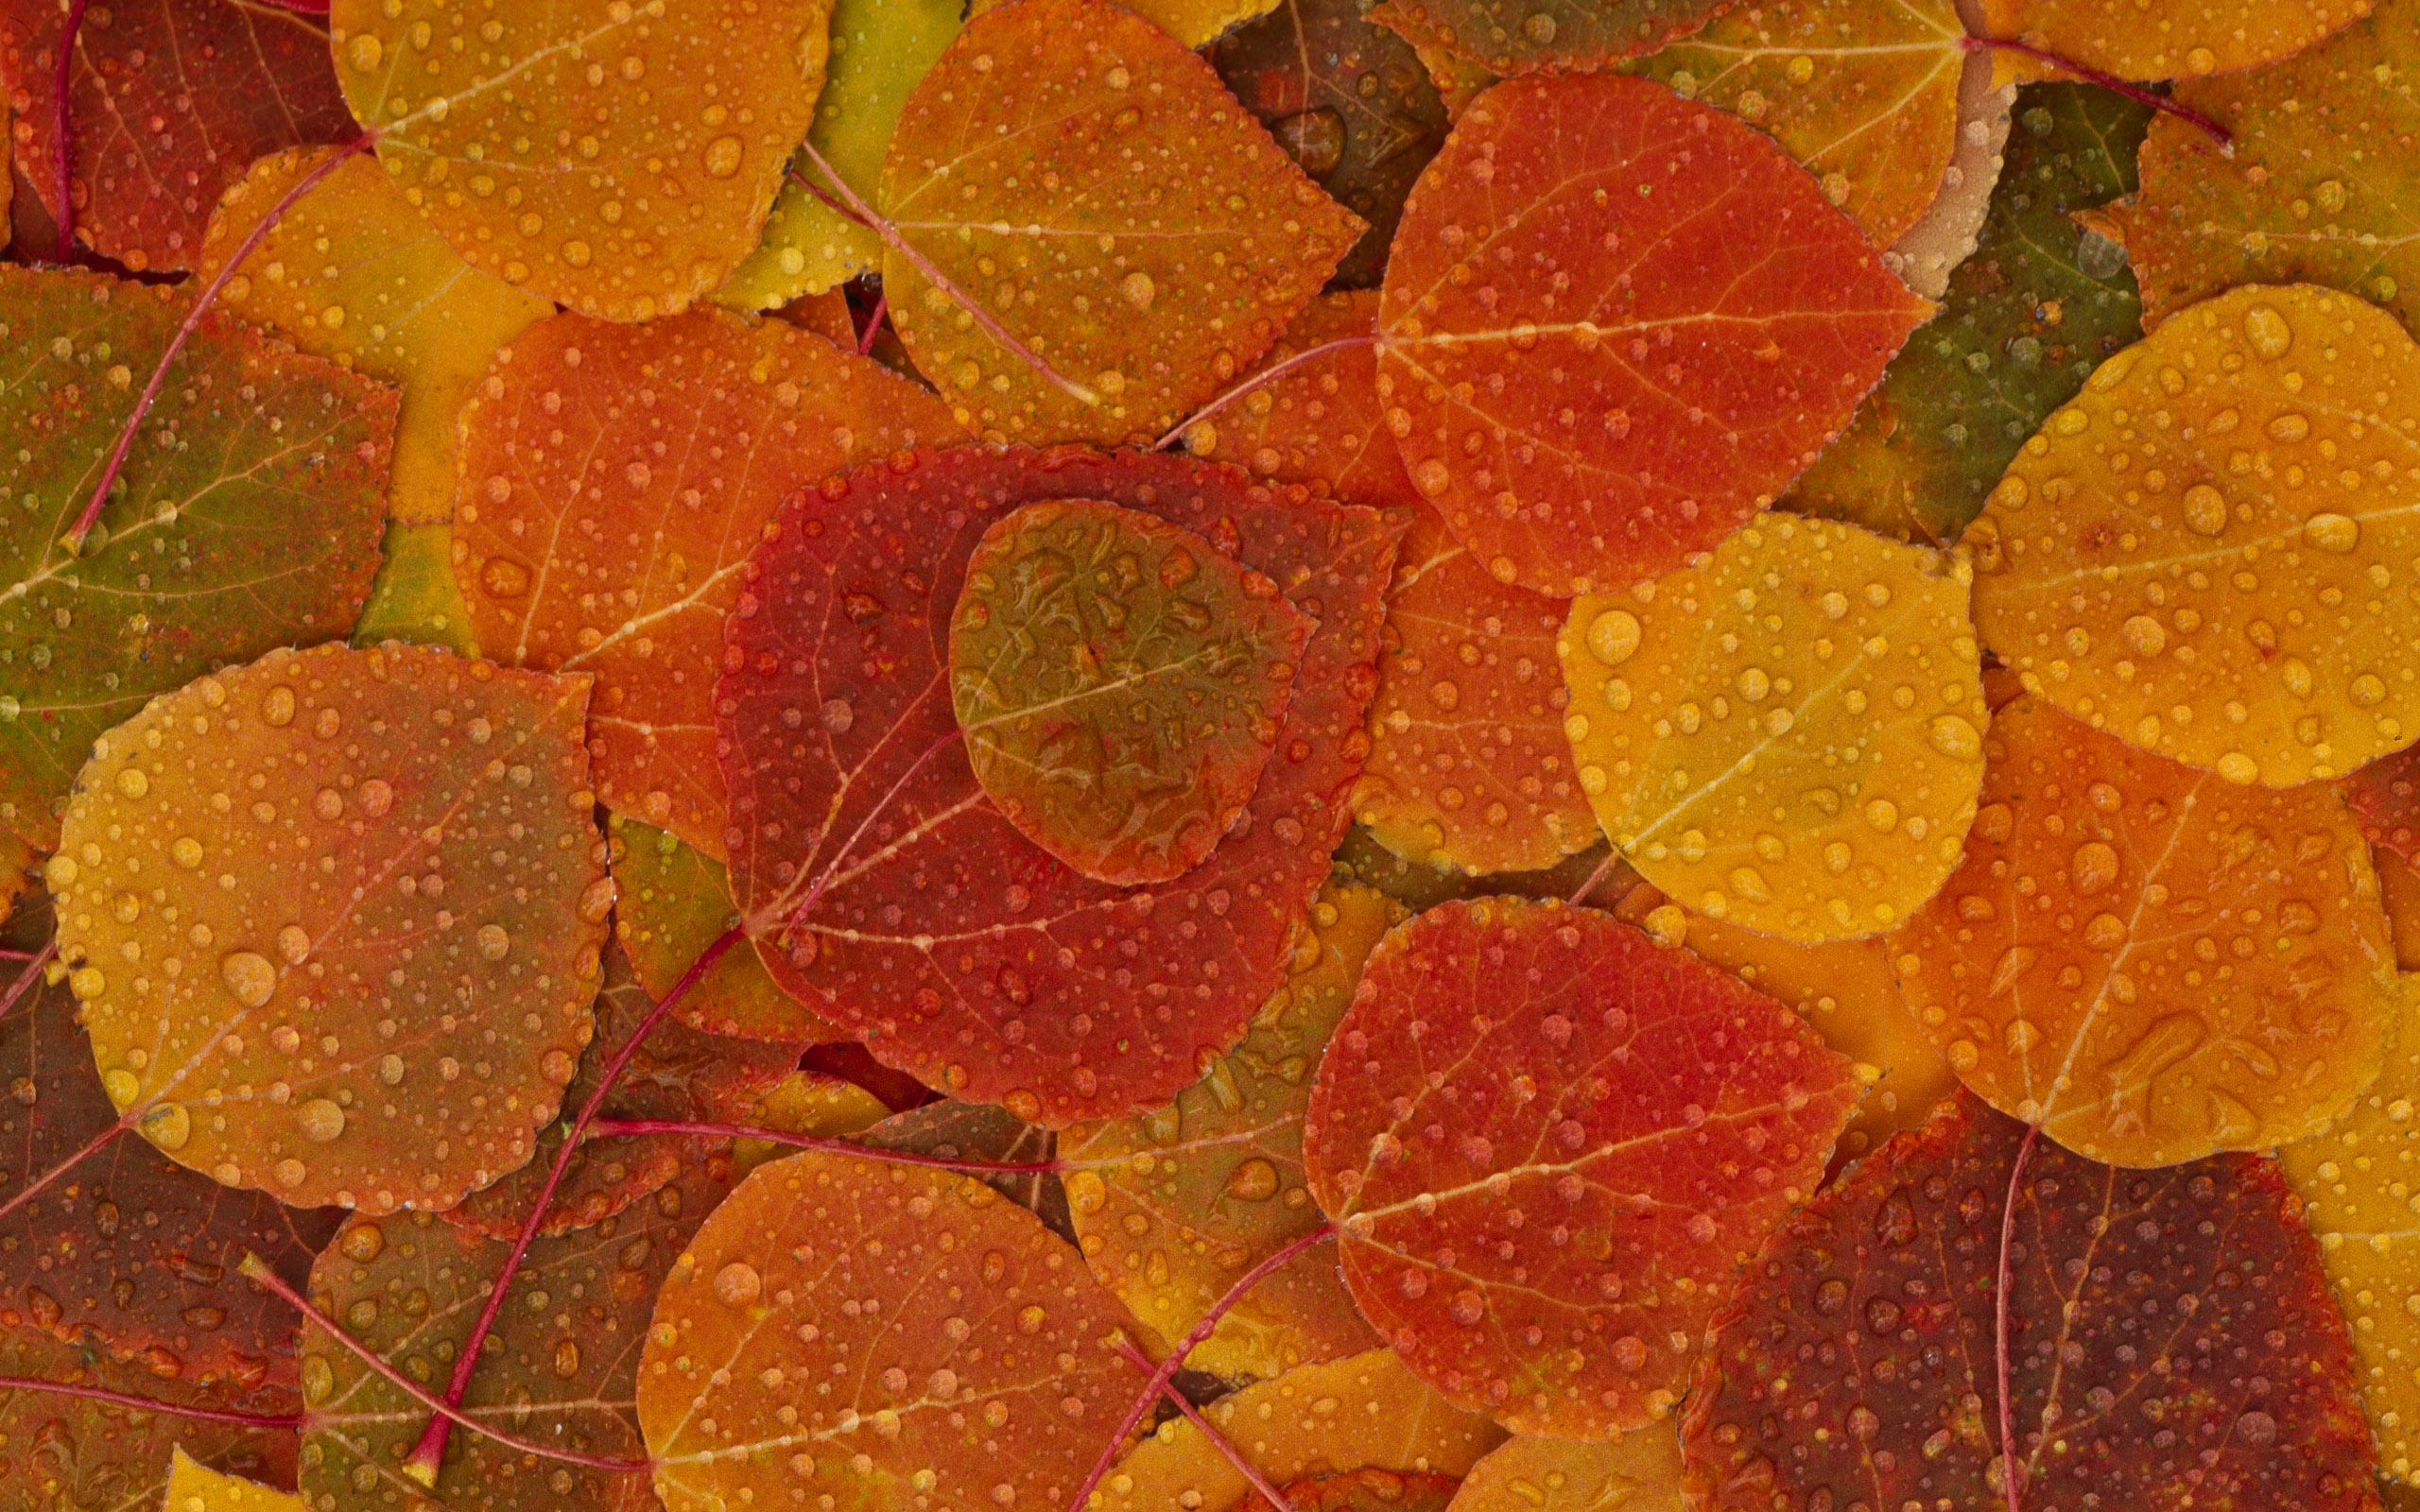 wallpaperstocknetfall leaves wallpapers 14804 2560x1600 1html 2560x1600